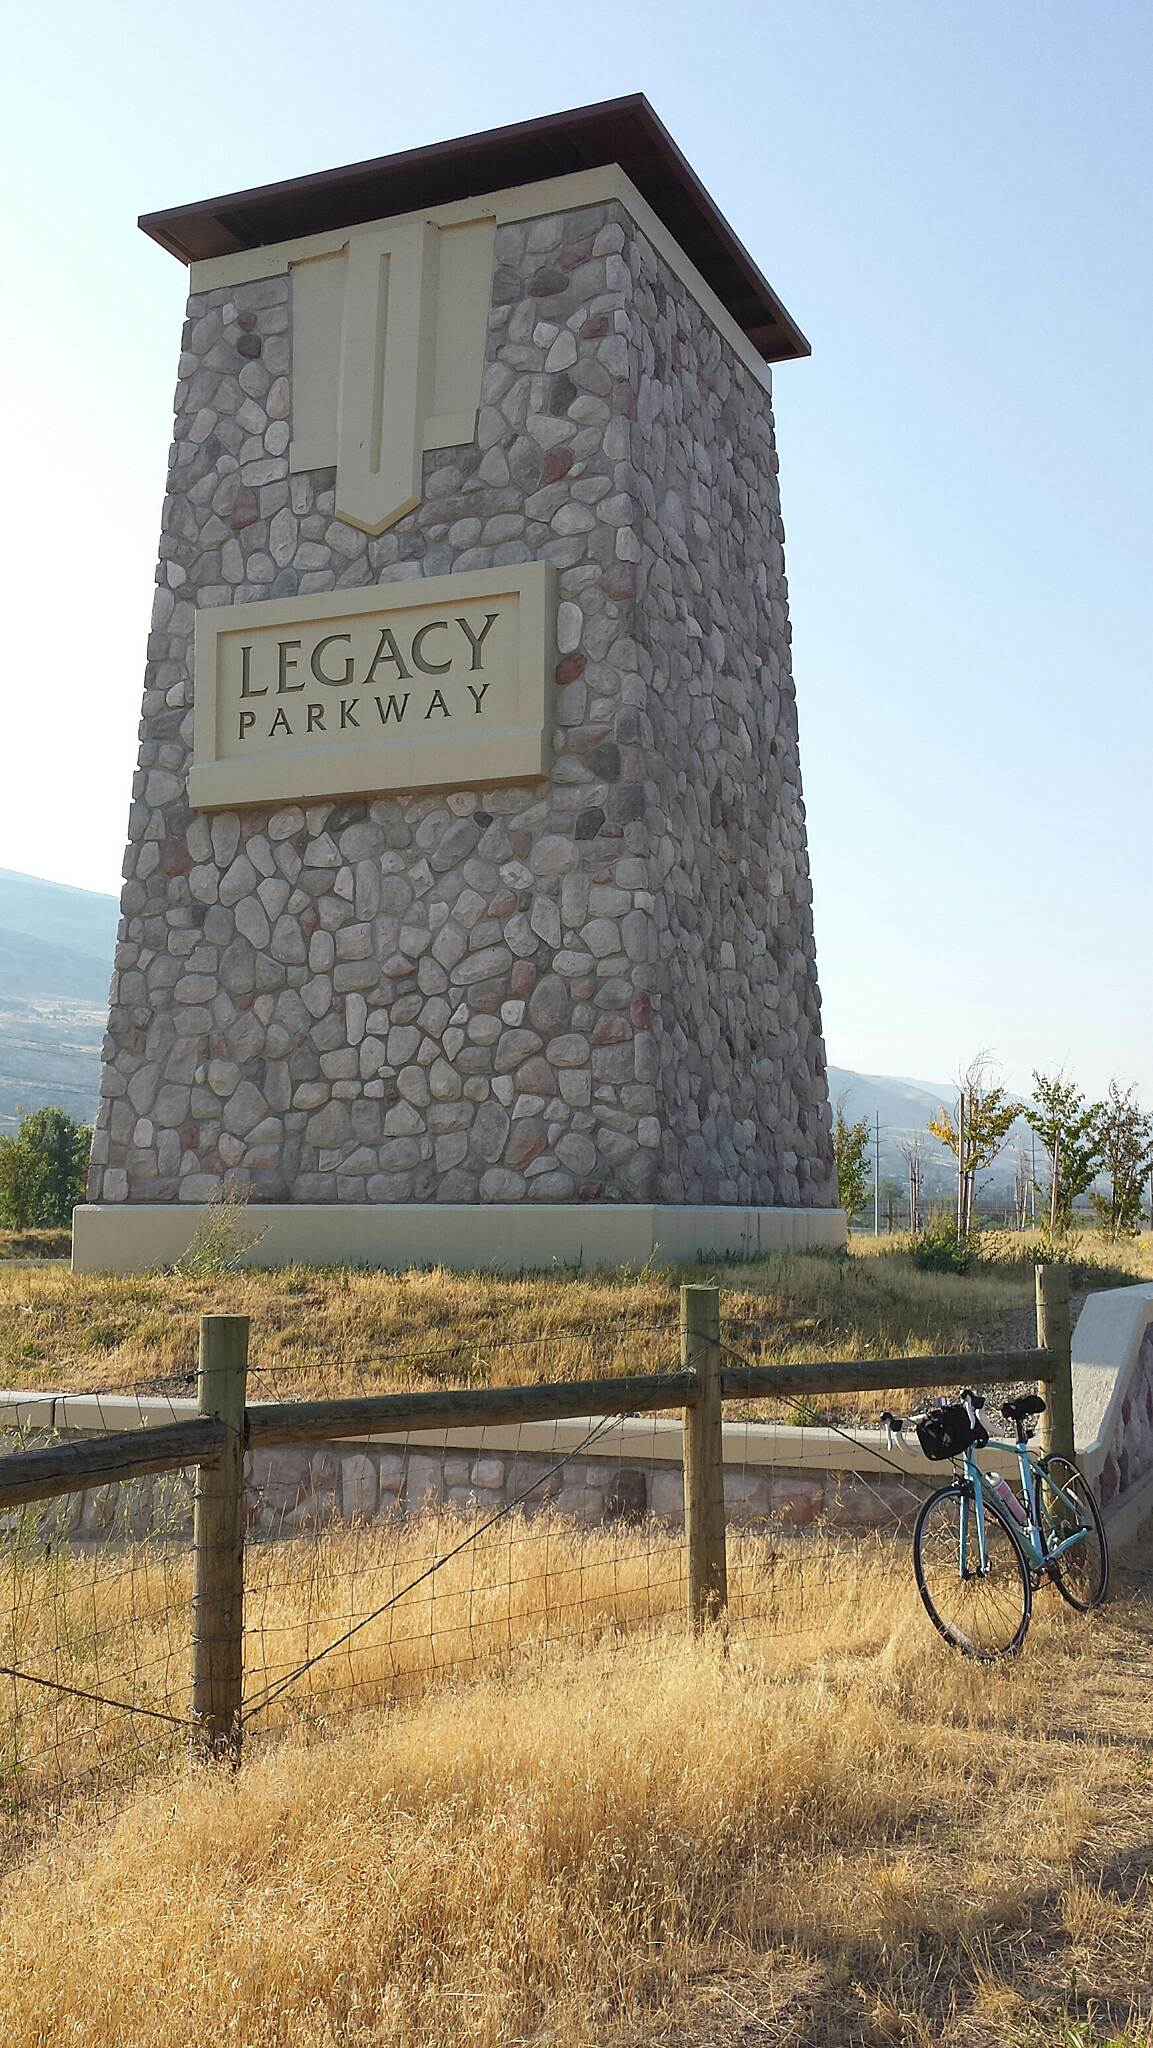 Legacy Parkway Trail Legacy Trail Sign Taken just before Glover Lane going south toward Centerville, UT.